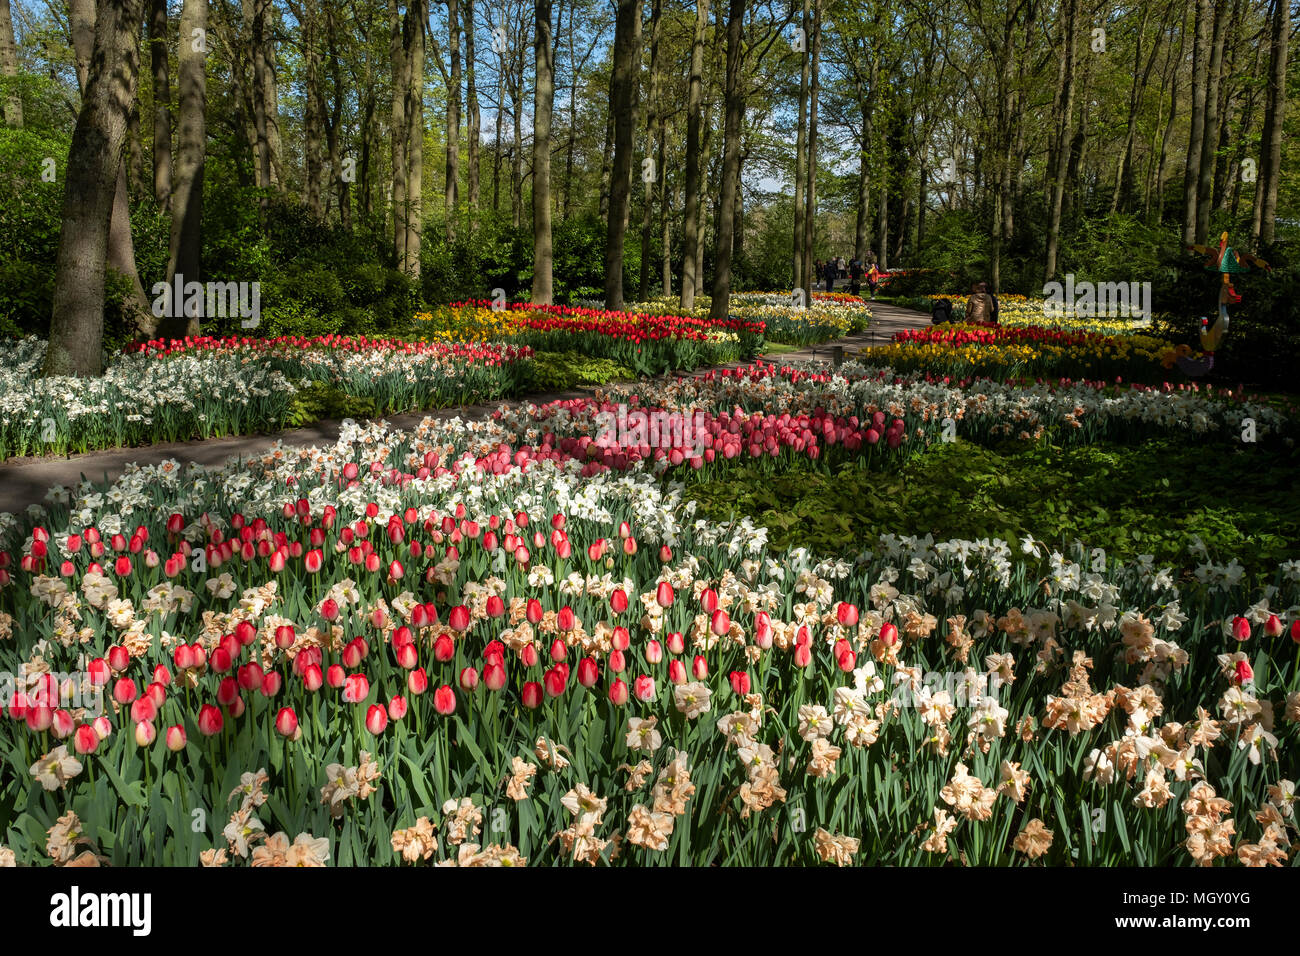 Floral spectacle in the largest garden in the world, the Keukenhof park. - Stock Image